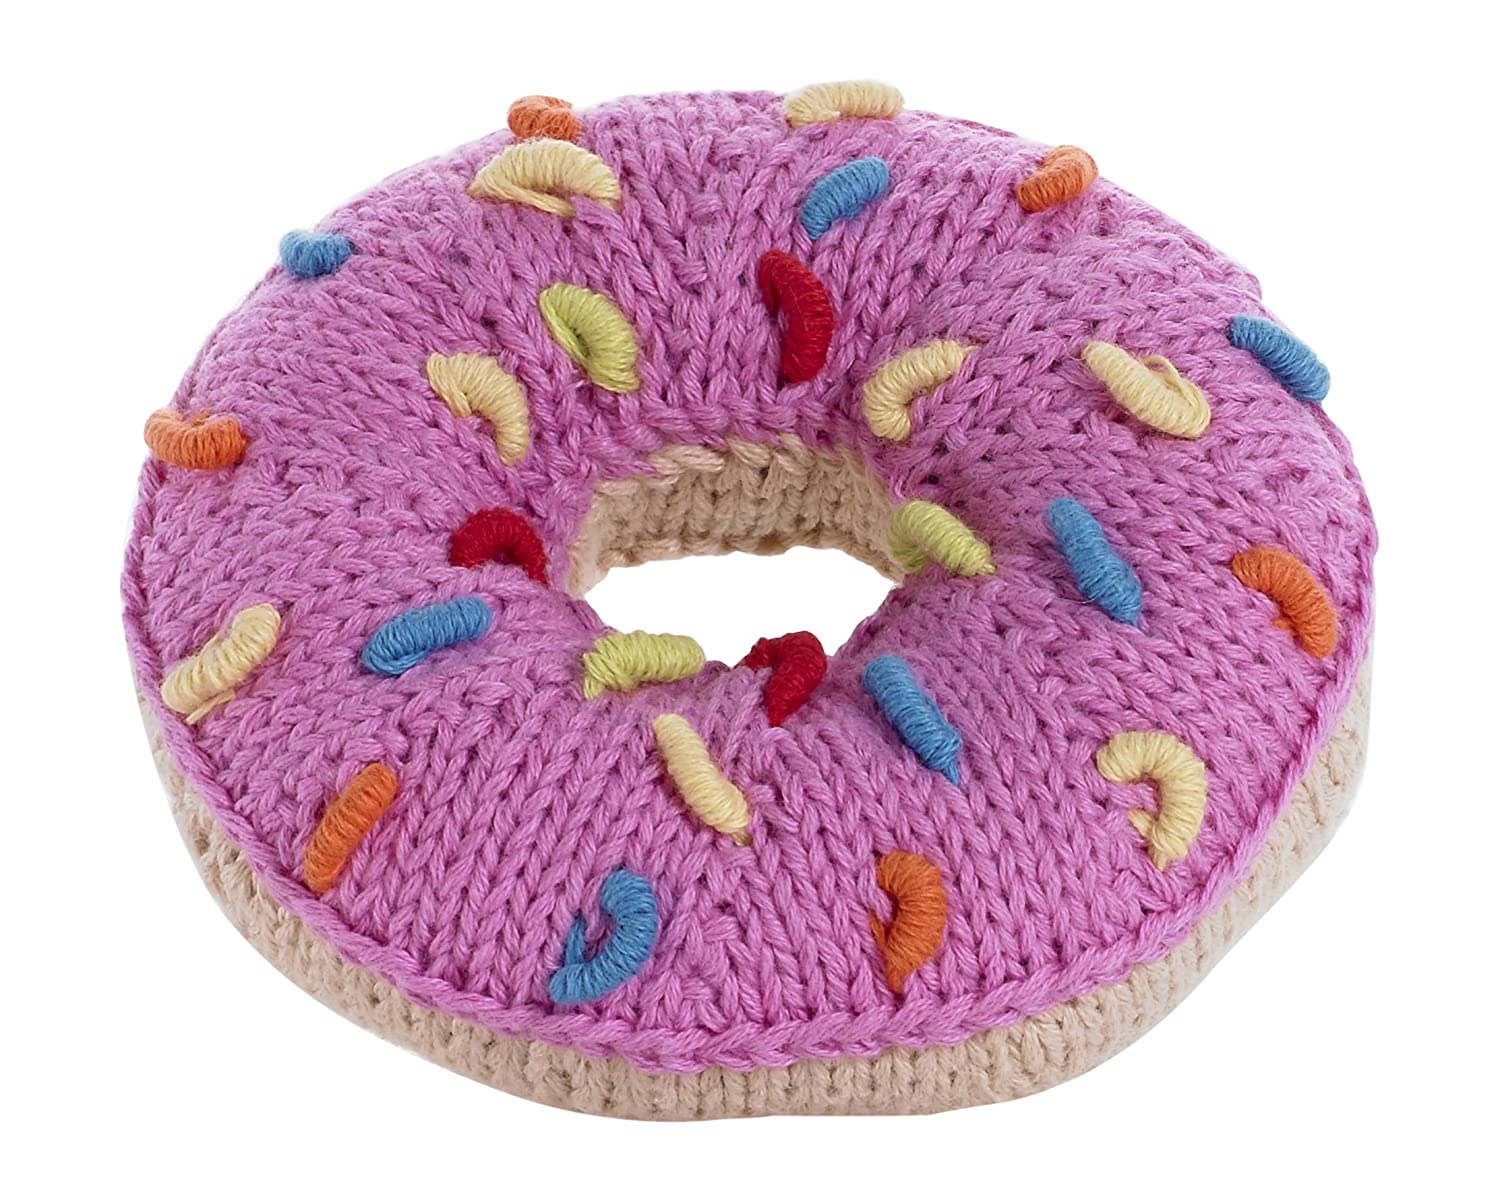 abaada22953 Amazon.com  Pebble hand knitted donut rattle - pink icing with white  sprinkles  Toys   Games